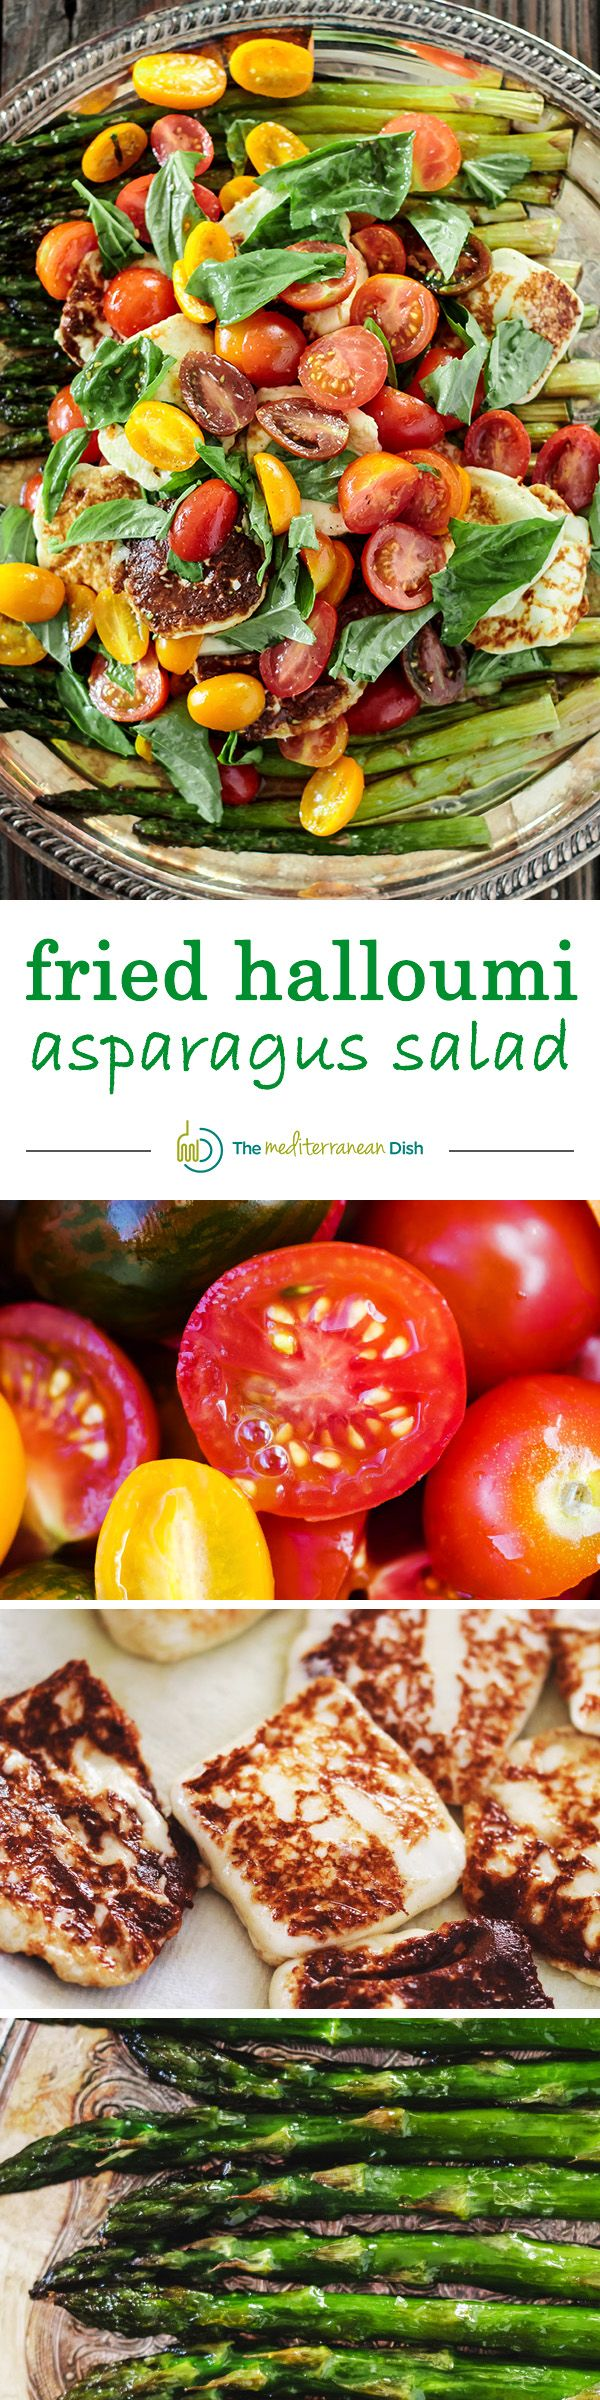 Fried halloumi and asparagus salad from The Mediterranean Dish. Roasted asparagus makes a perfect bed for fried halloumi cheese, tomatoes and basil w/ a light sherry vinaigrette!